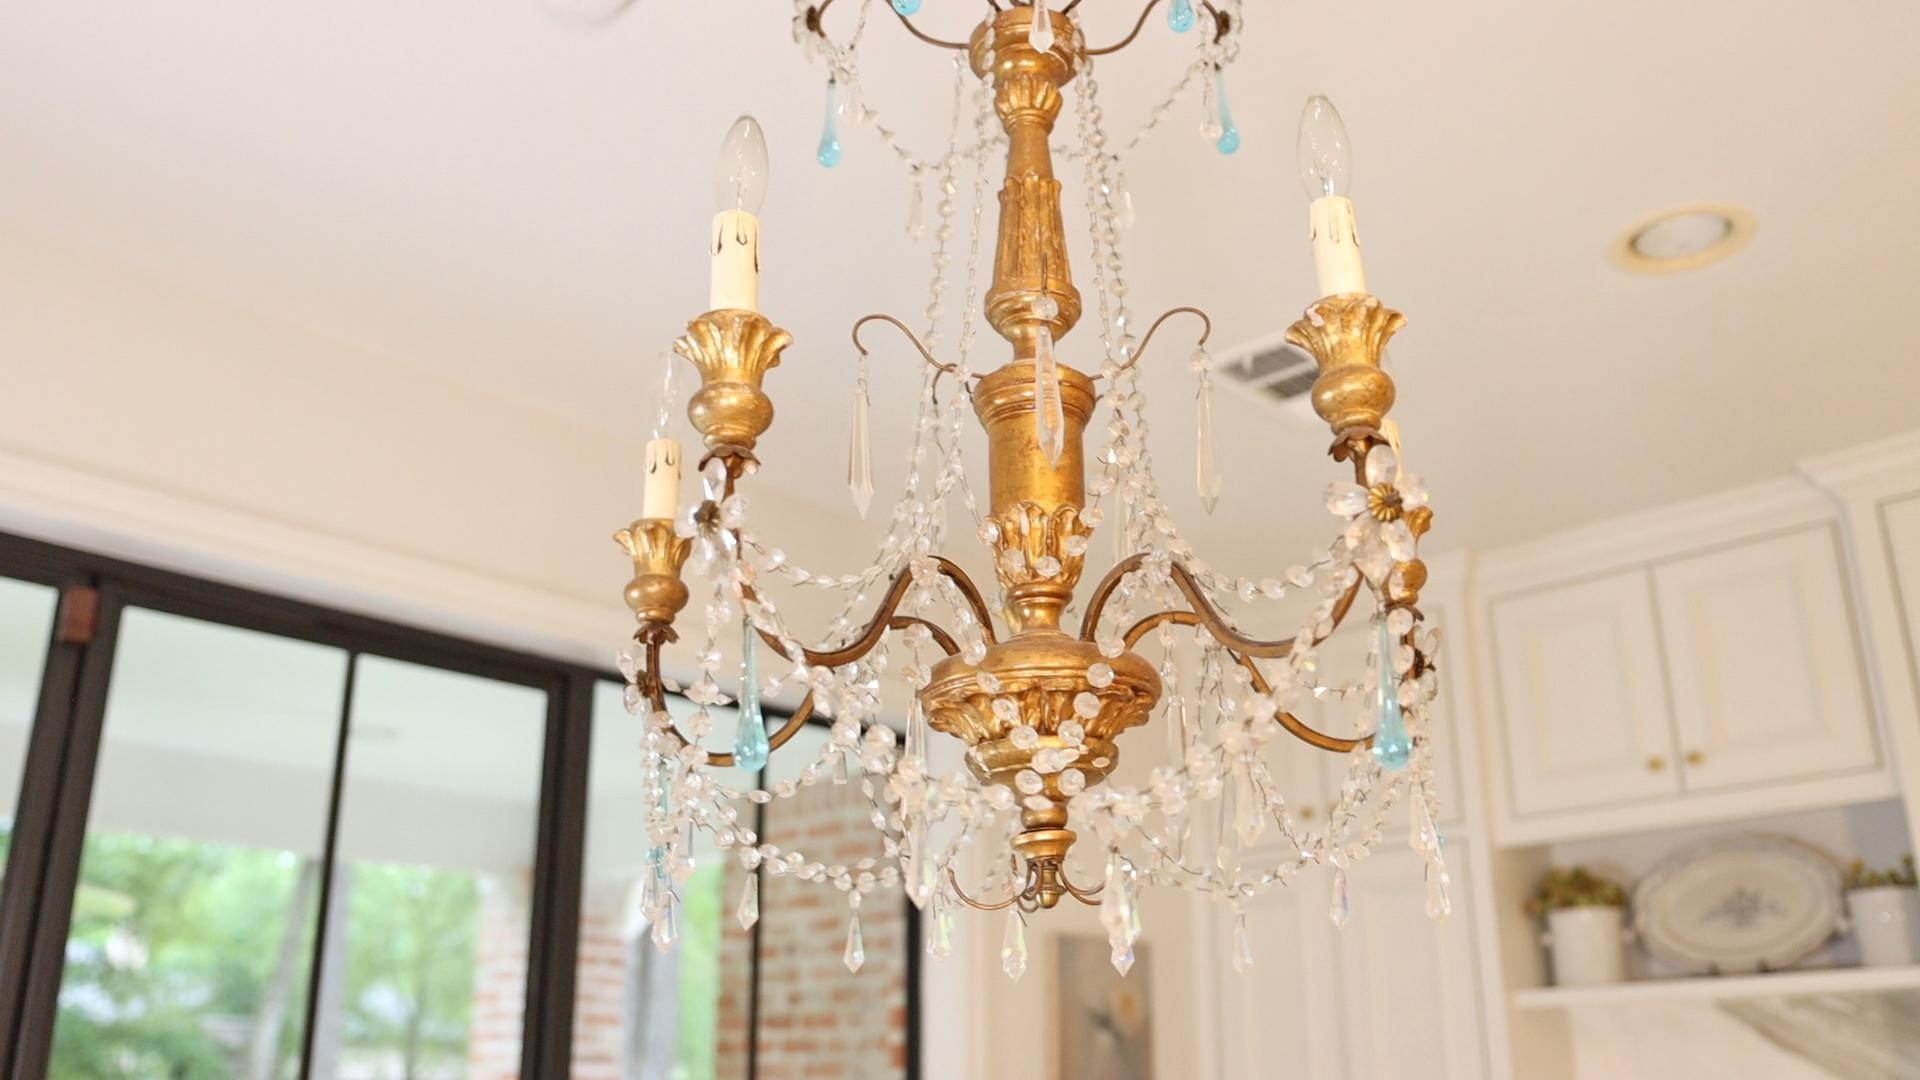 Gold and crystal small-sized French country decor chandelier to elevate a casual farmhouse dining nook.